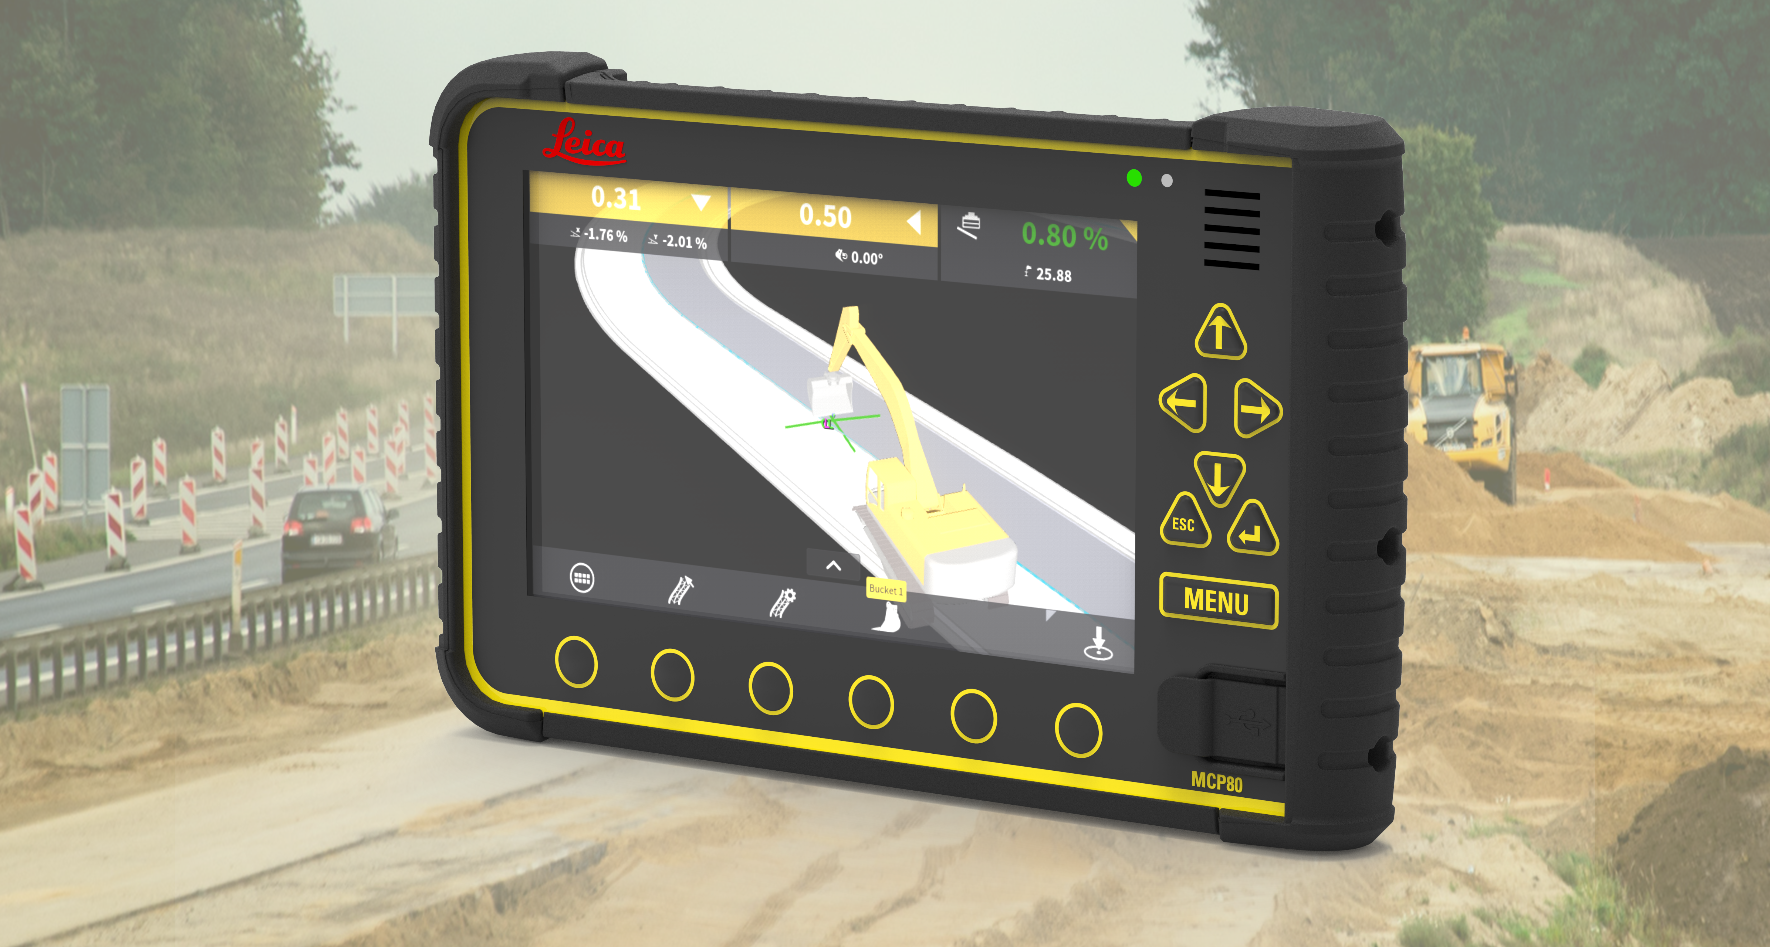 Leica MC1 for Excavators, ConX connect, add intelligence  to heavy construction projects, sites